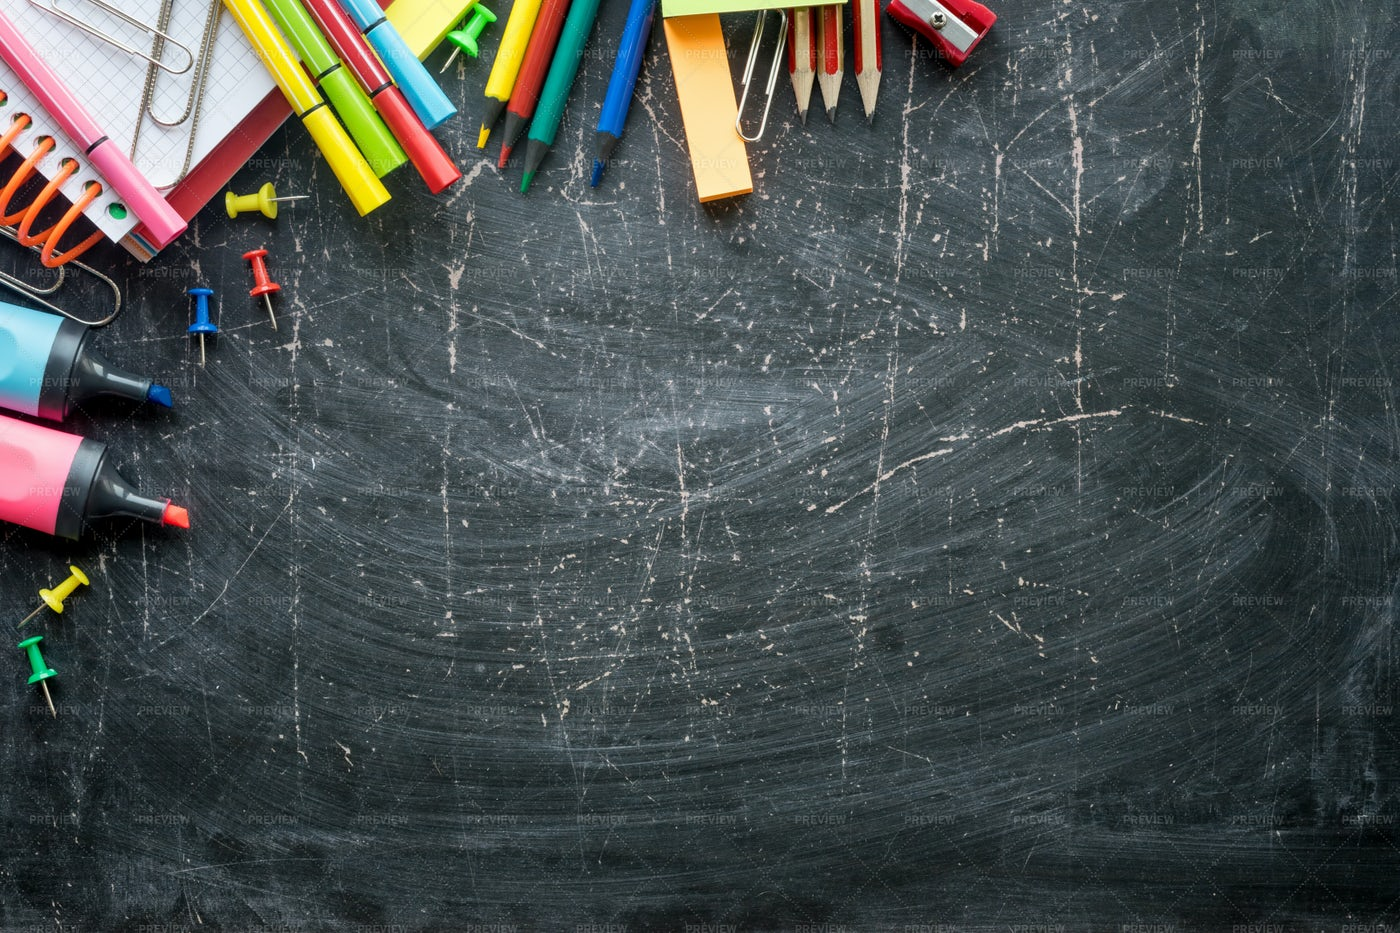 Stationery Against A Chalkboard: Stock Photos